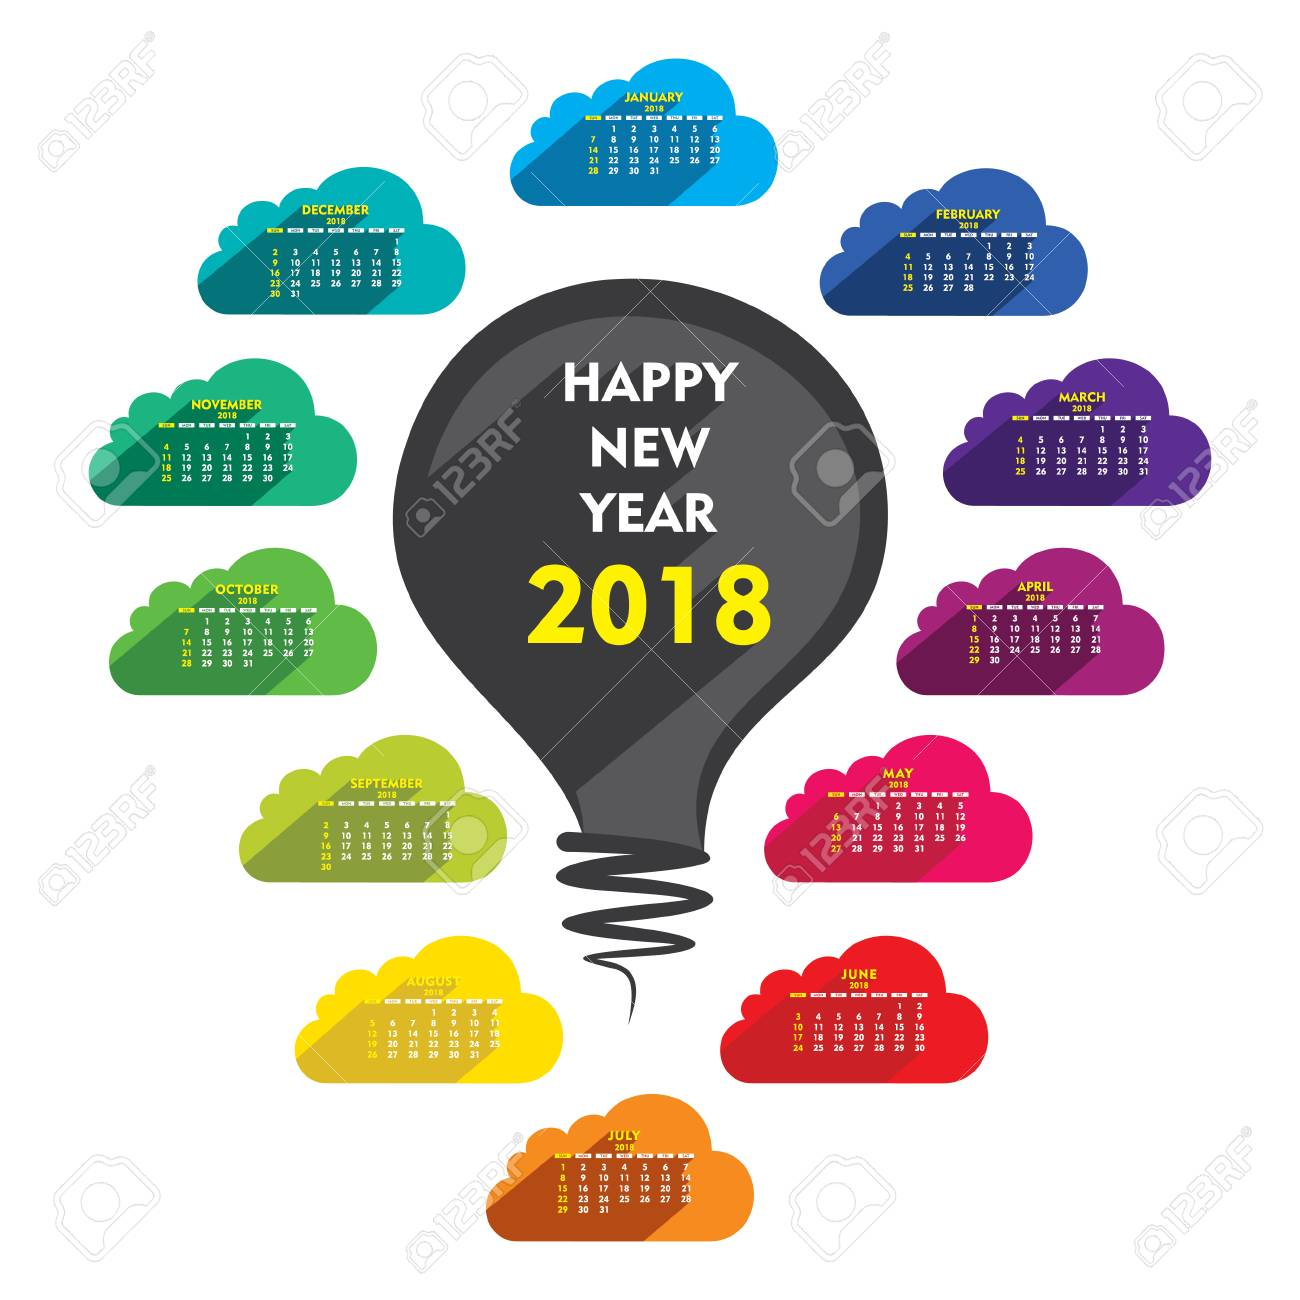 Creative Colorful Cloud Shape New Year 2018 Calendar 2018 Template